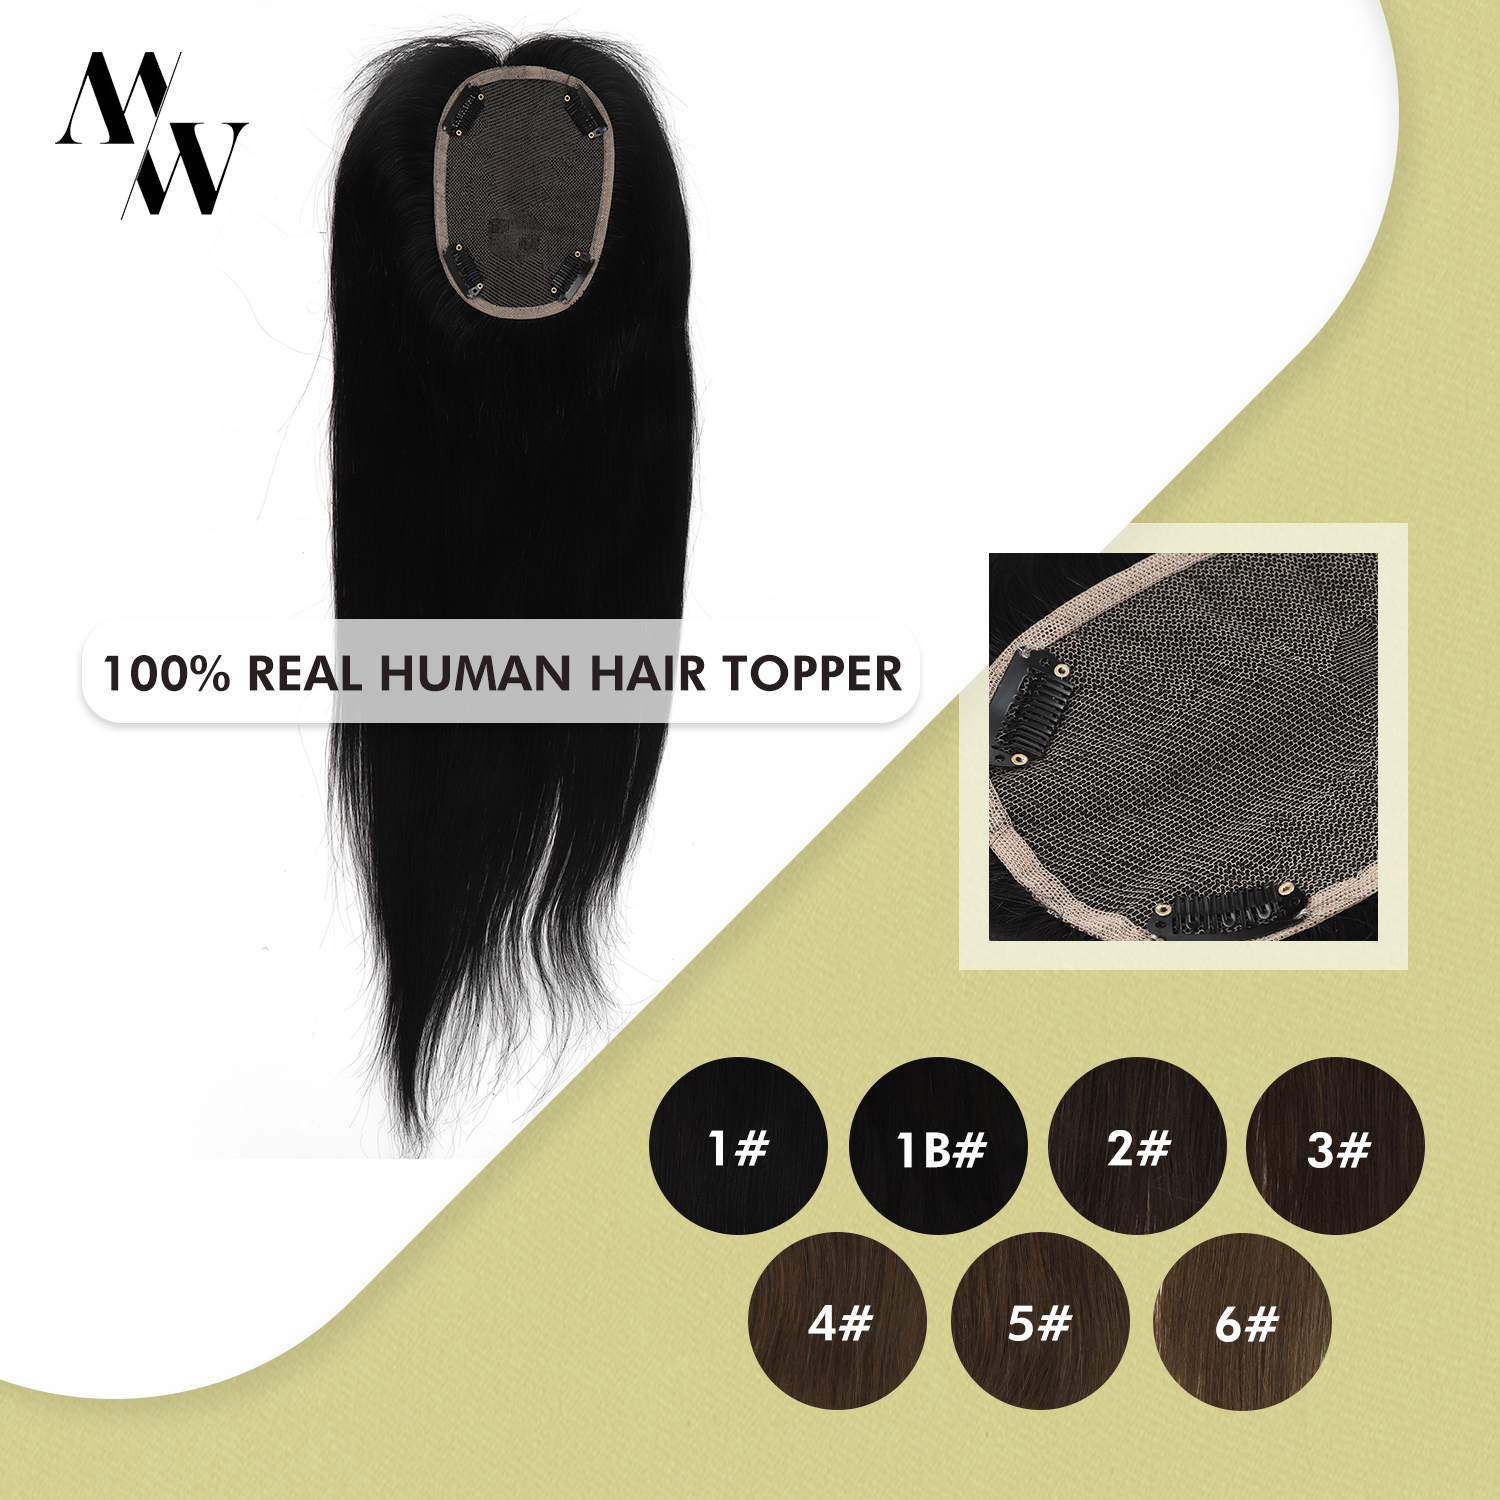 MW 14inch <font><b>Lace</b></font> Hair Topper <font><b>Wig</b></font> 130% Density Clip In Toupee Hair For Women Machine Remy Human Hair Brown Color <font><b>10</b></font>*13cm image